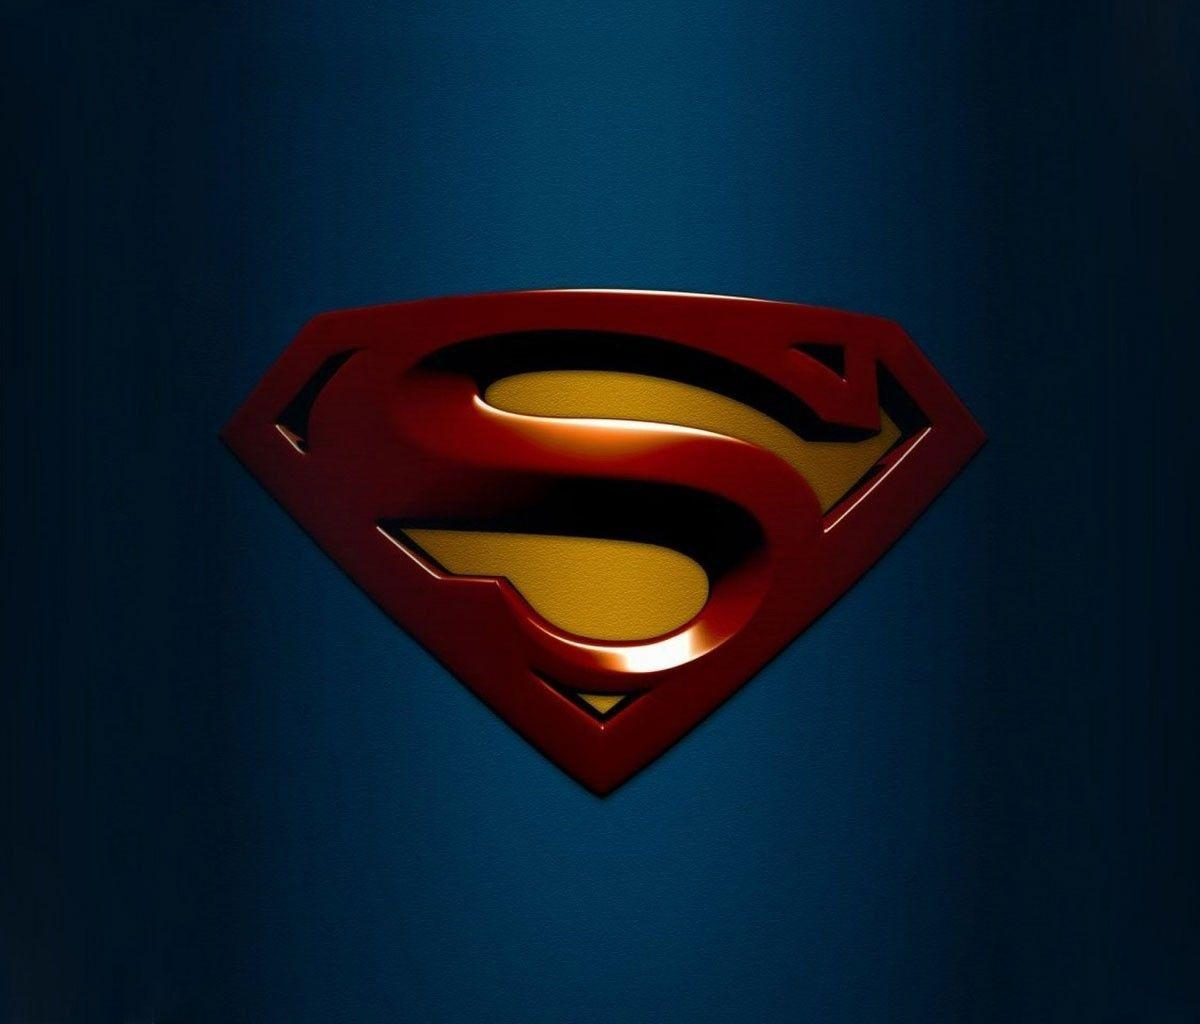 Love Wallpaper For Mobile Zedge : Best Superman Wallpapers - Wallpaper cave